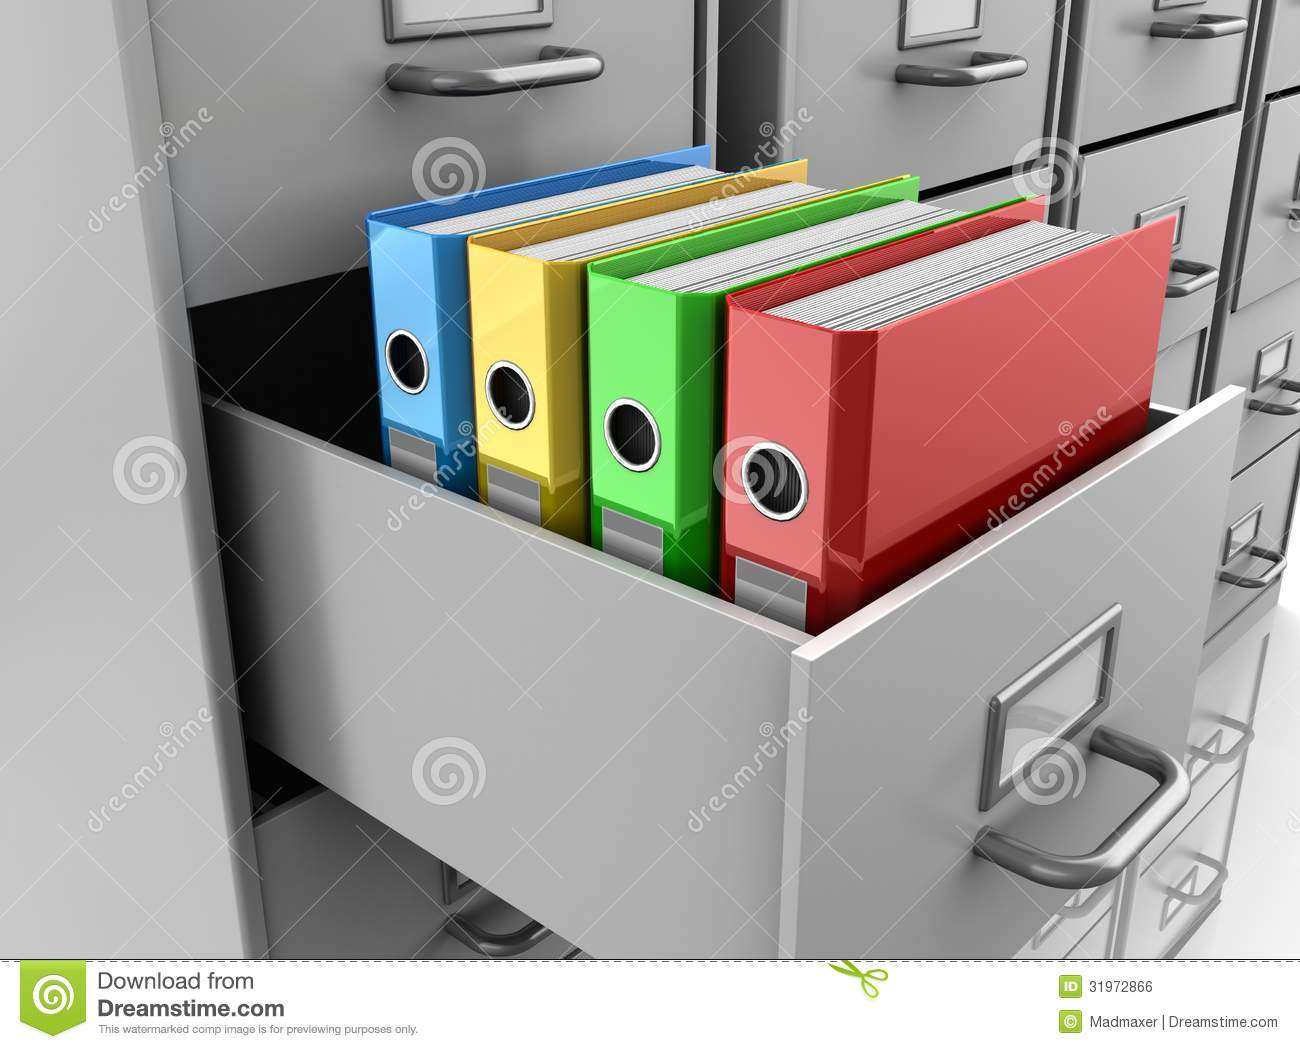 Binder Folders In Filing Cabinet Royalty Free Stock Image - Image ...